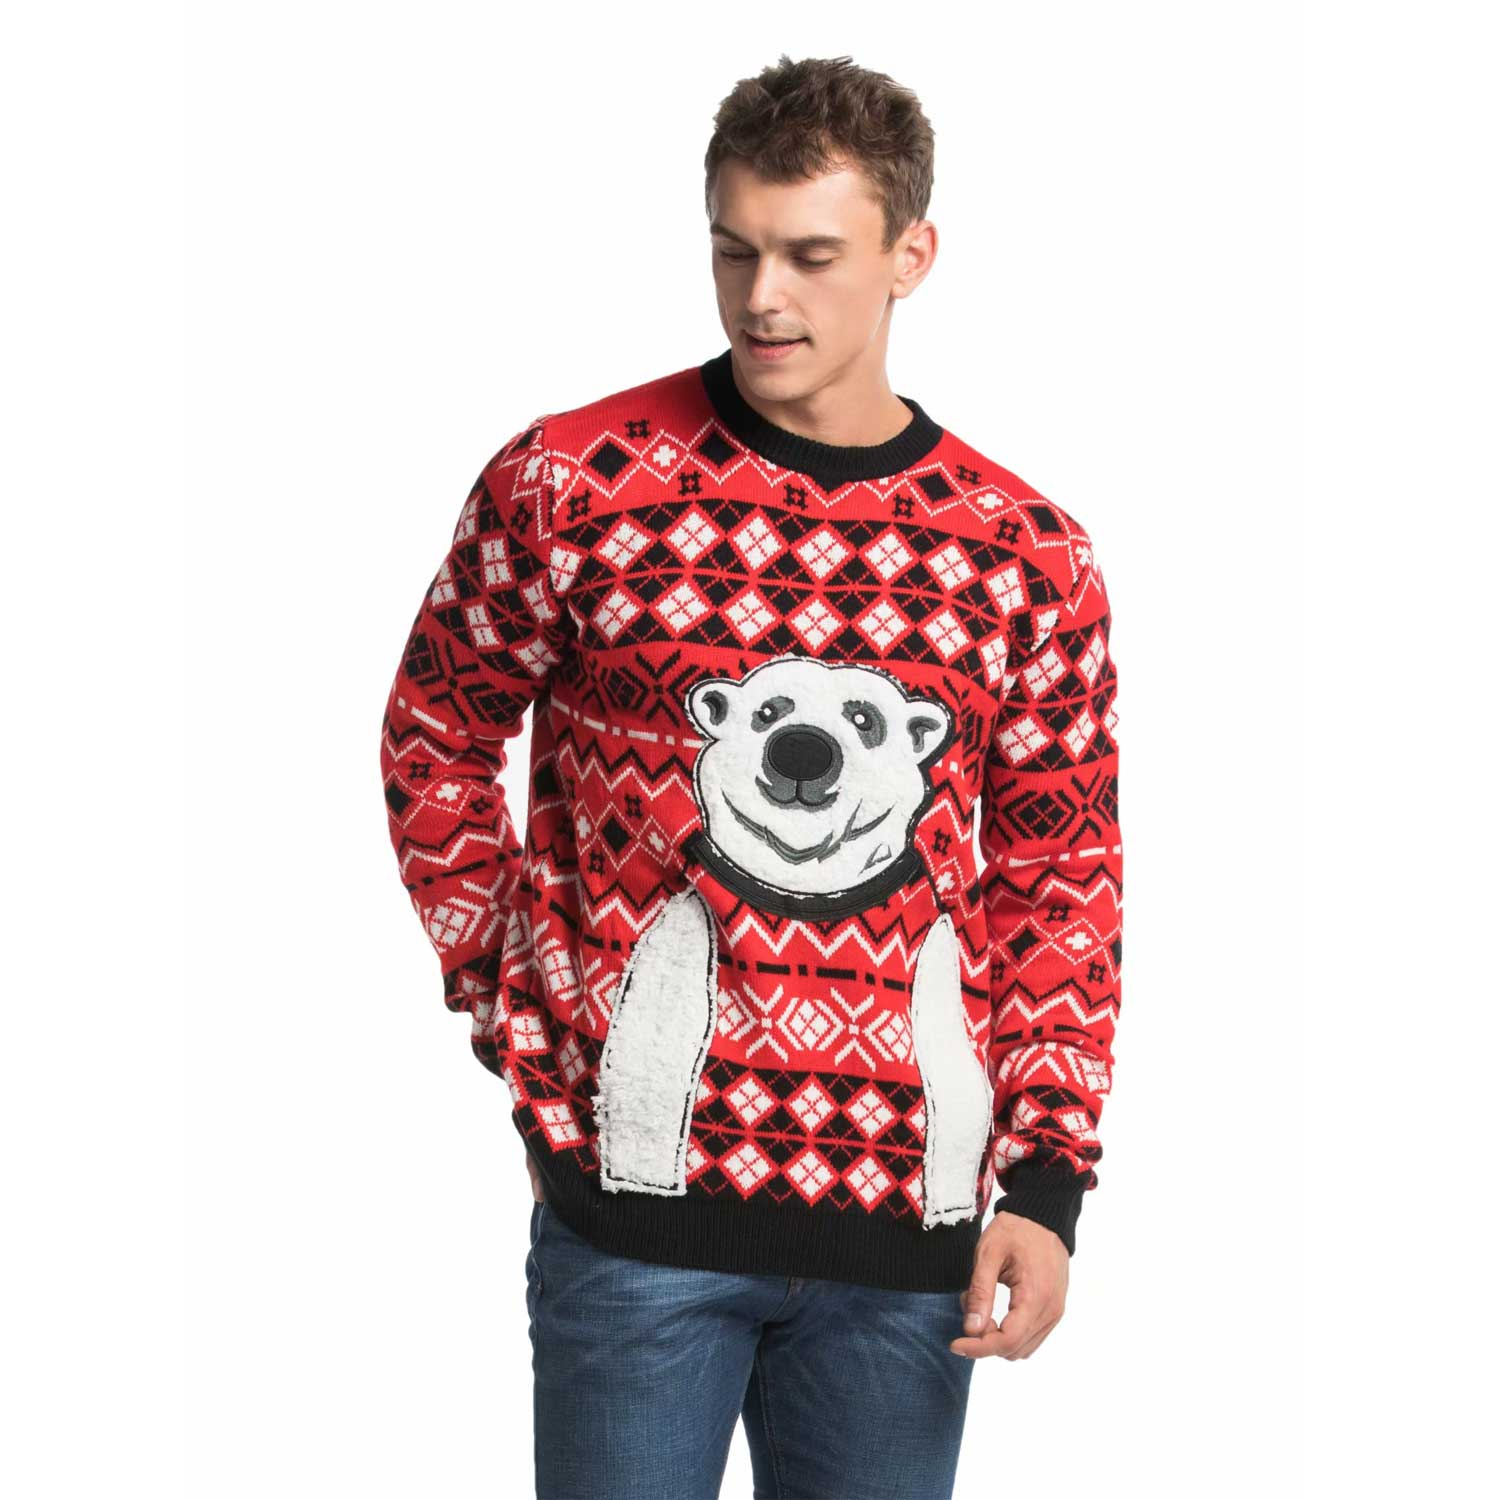 Christmas Sweaters For Couples.Couples Ugly Christmas Sweater Express Your Polar Bear